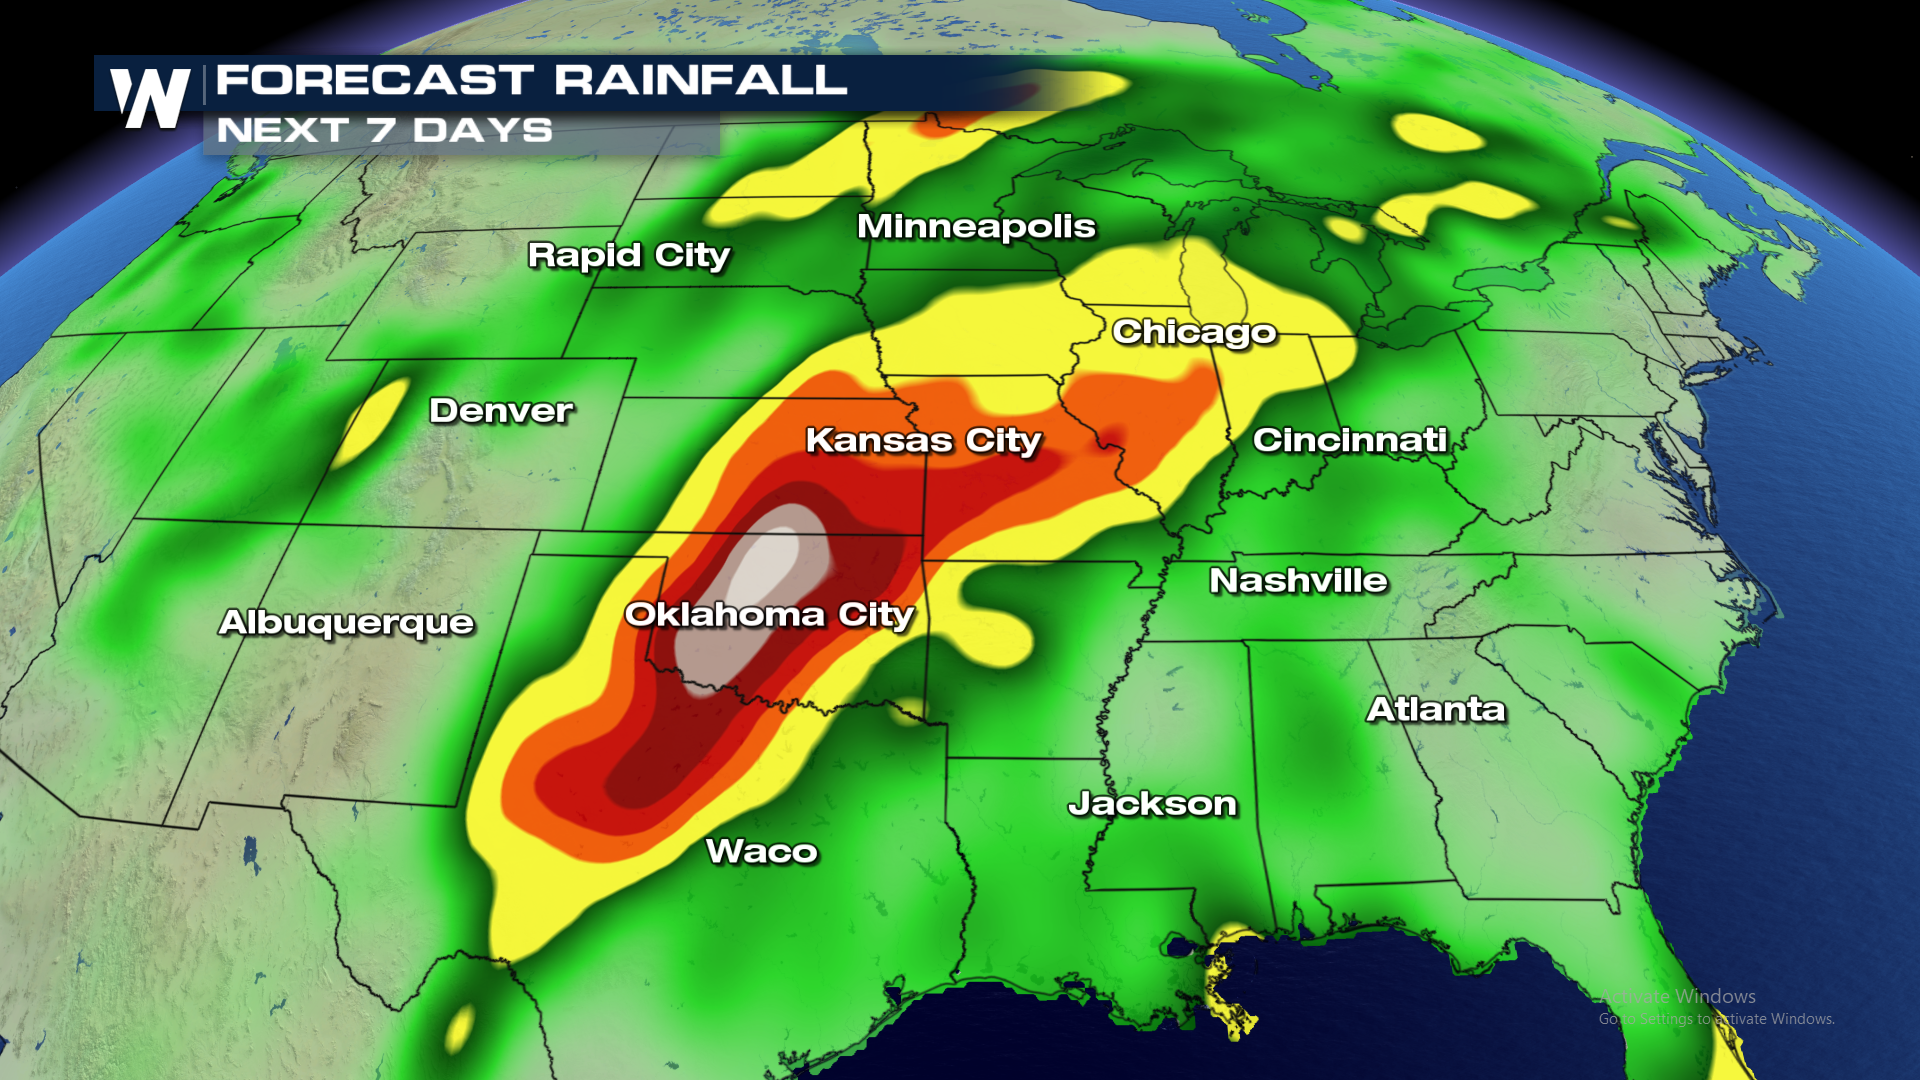 over next 7 days heavy rain likely for central united states